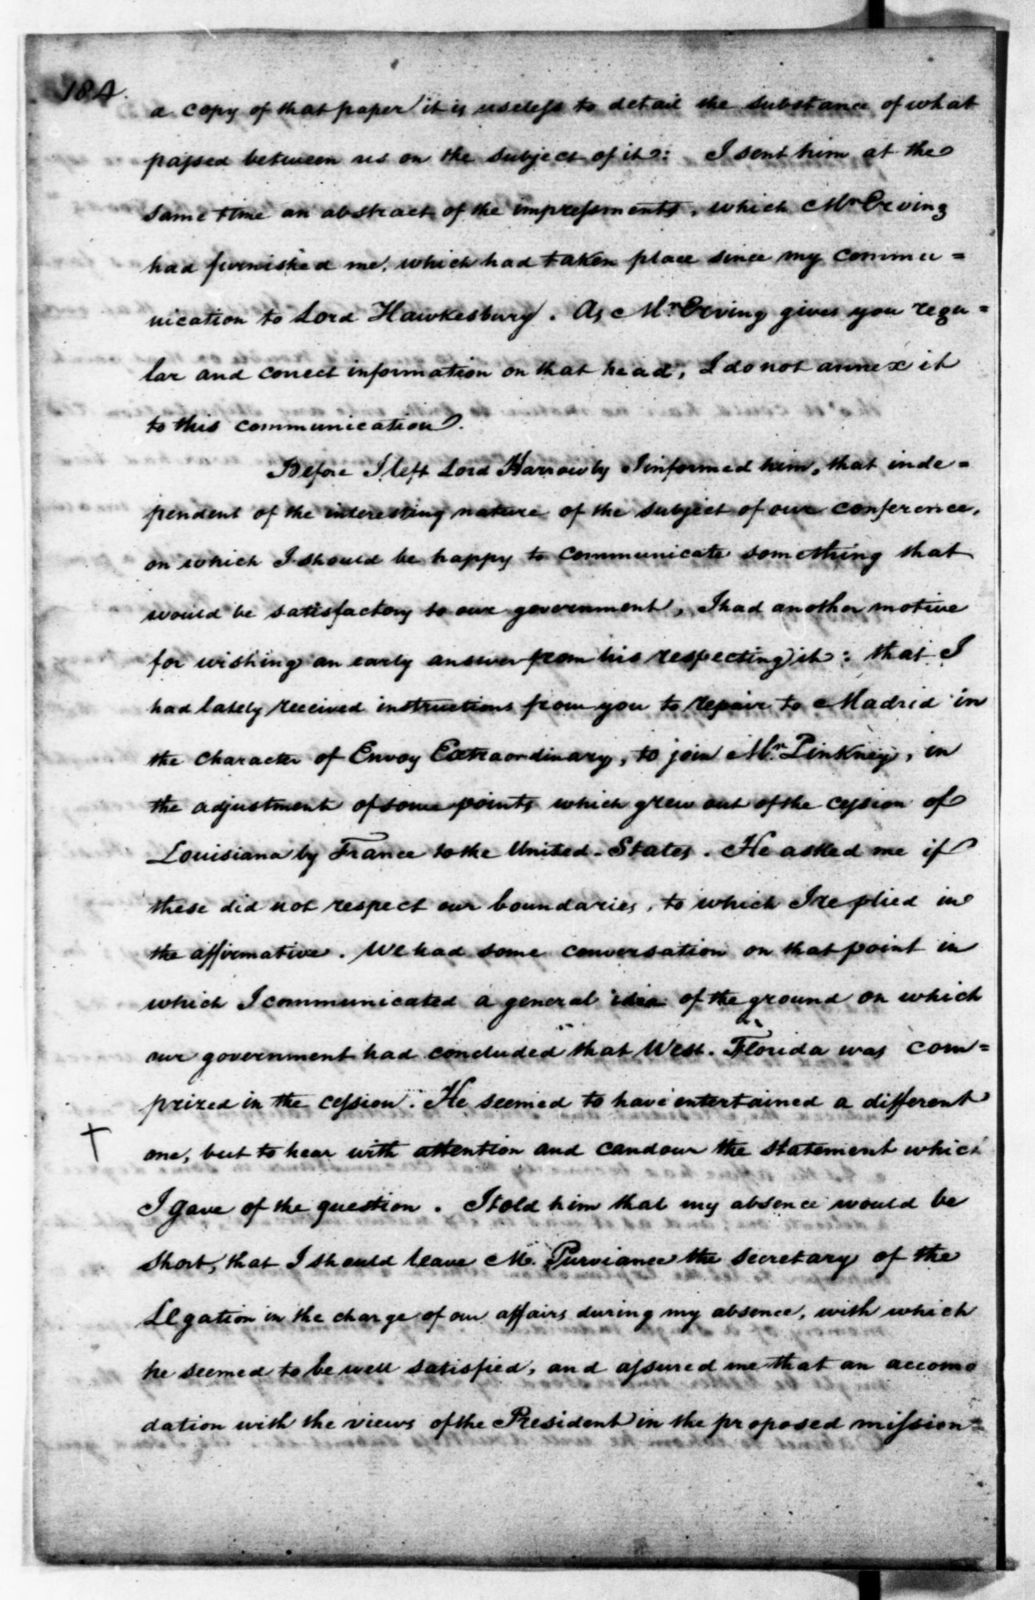 James Monroe Papers: Series 3, Letterbooks and Account Book, 1794-1806; Vol. 1; 1804 Aug. 7-1805 Nov. 29 (Reel 11)